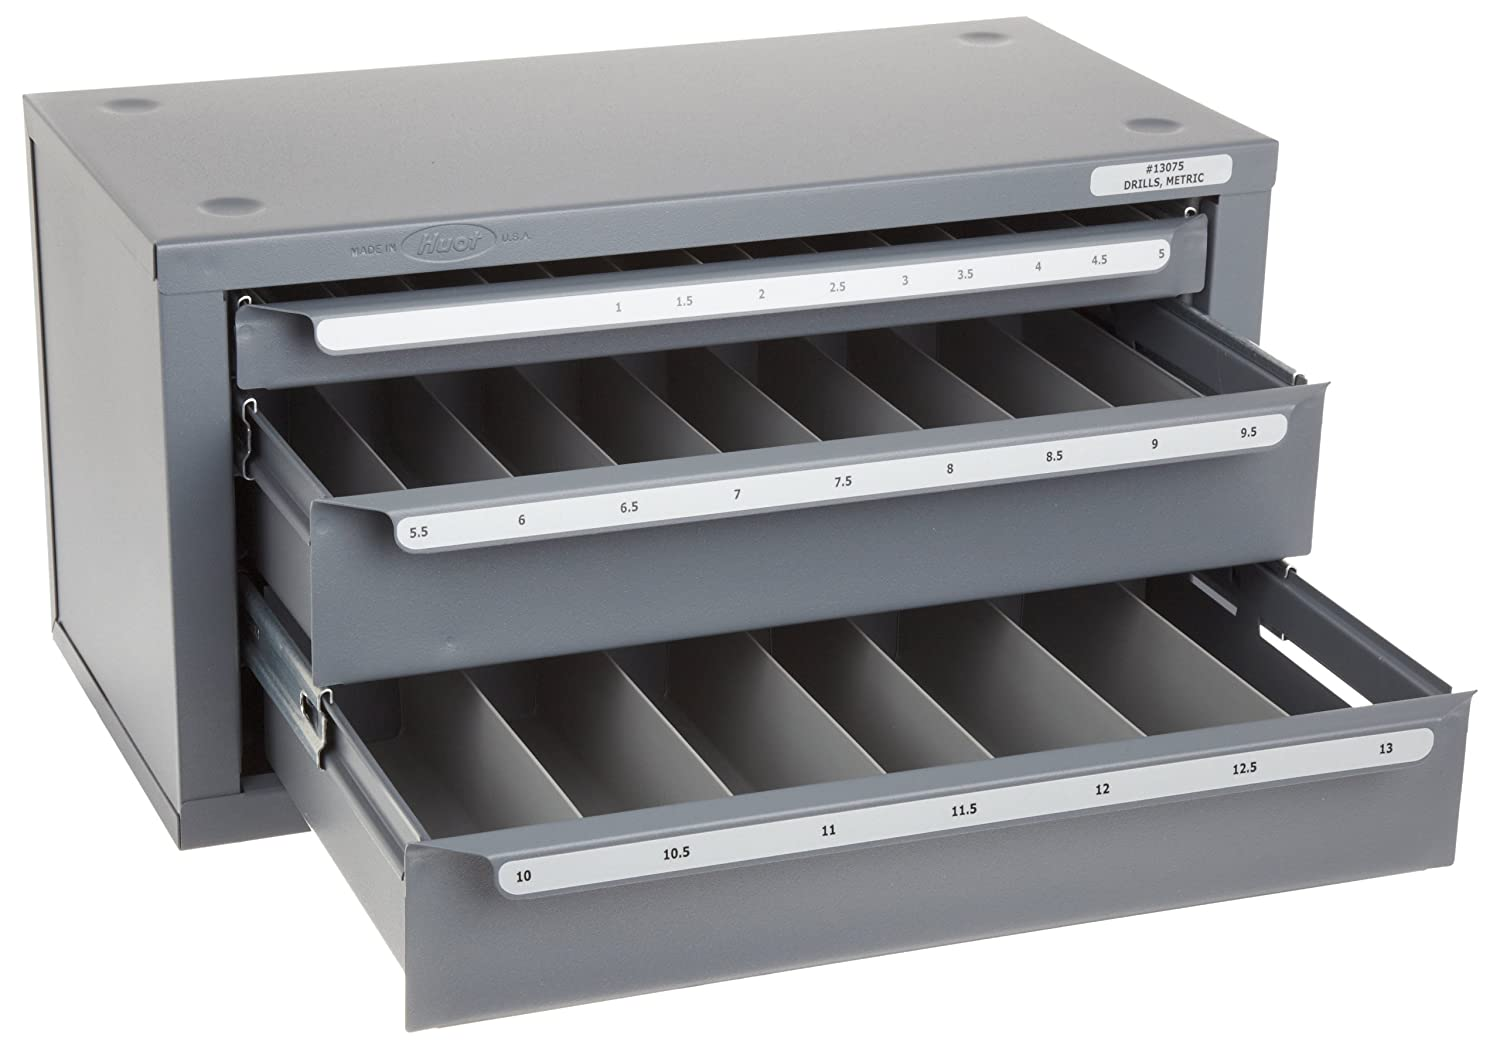 Huot Three-Drawer Drill Bit Dispenser Cabinet for Metric Sizes 1 mm to 13 mm in 0.5 mm Increments